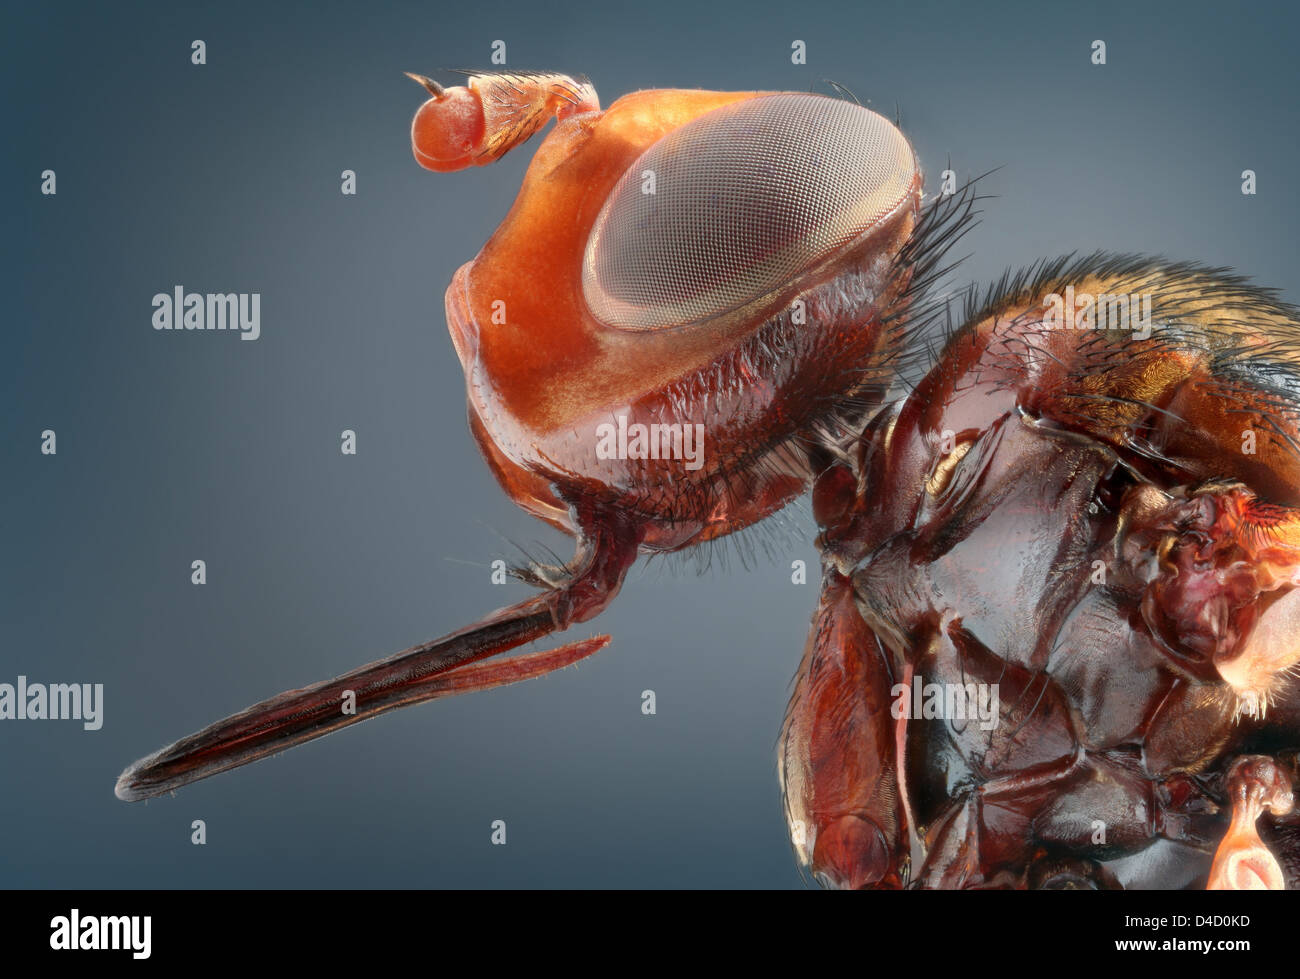 Thick-headed fly (Conopidae), extreme close-up - Stock Image